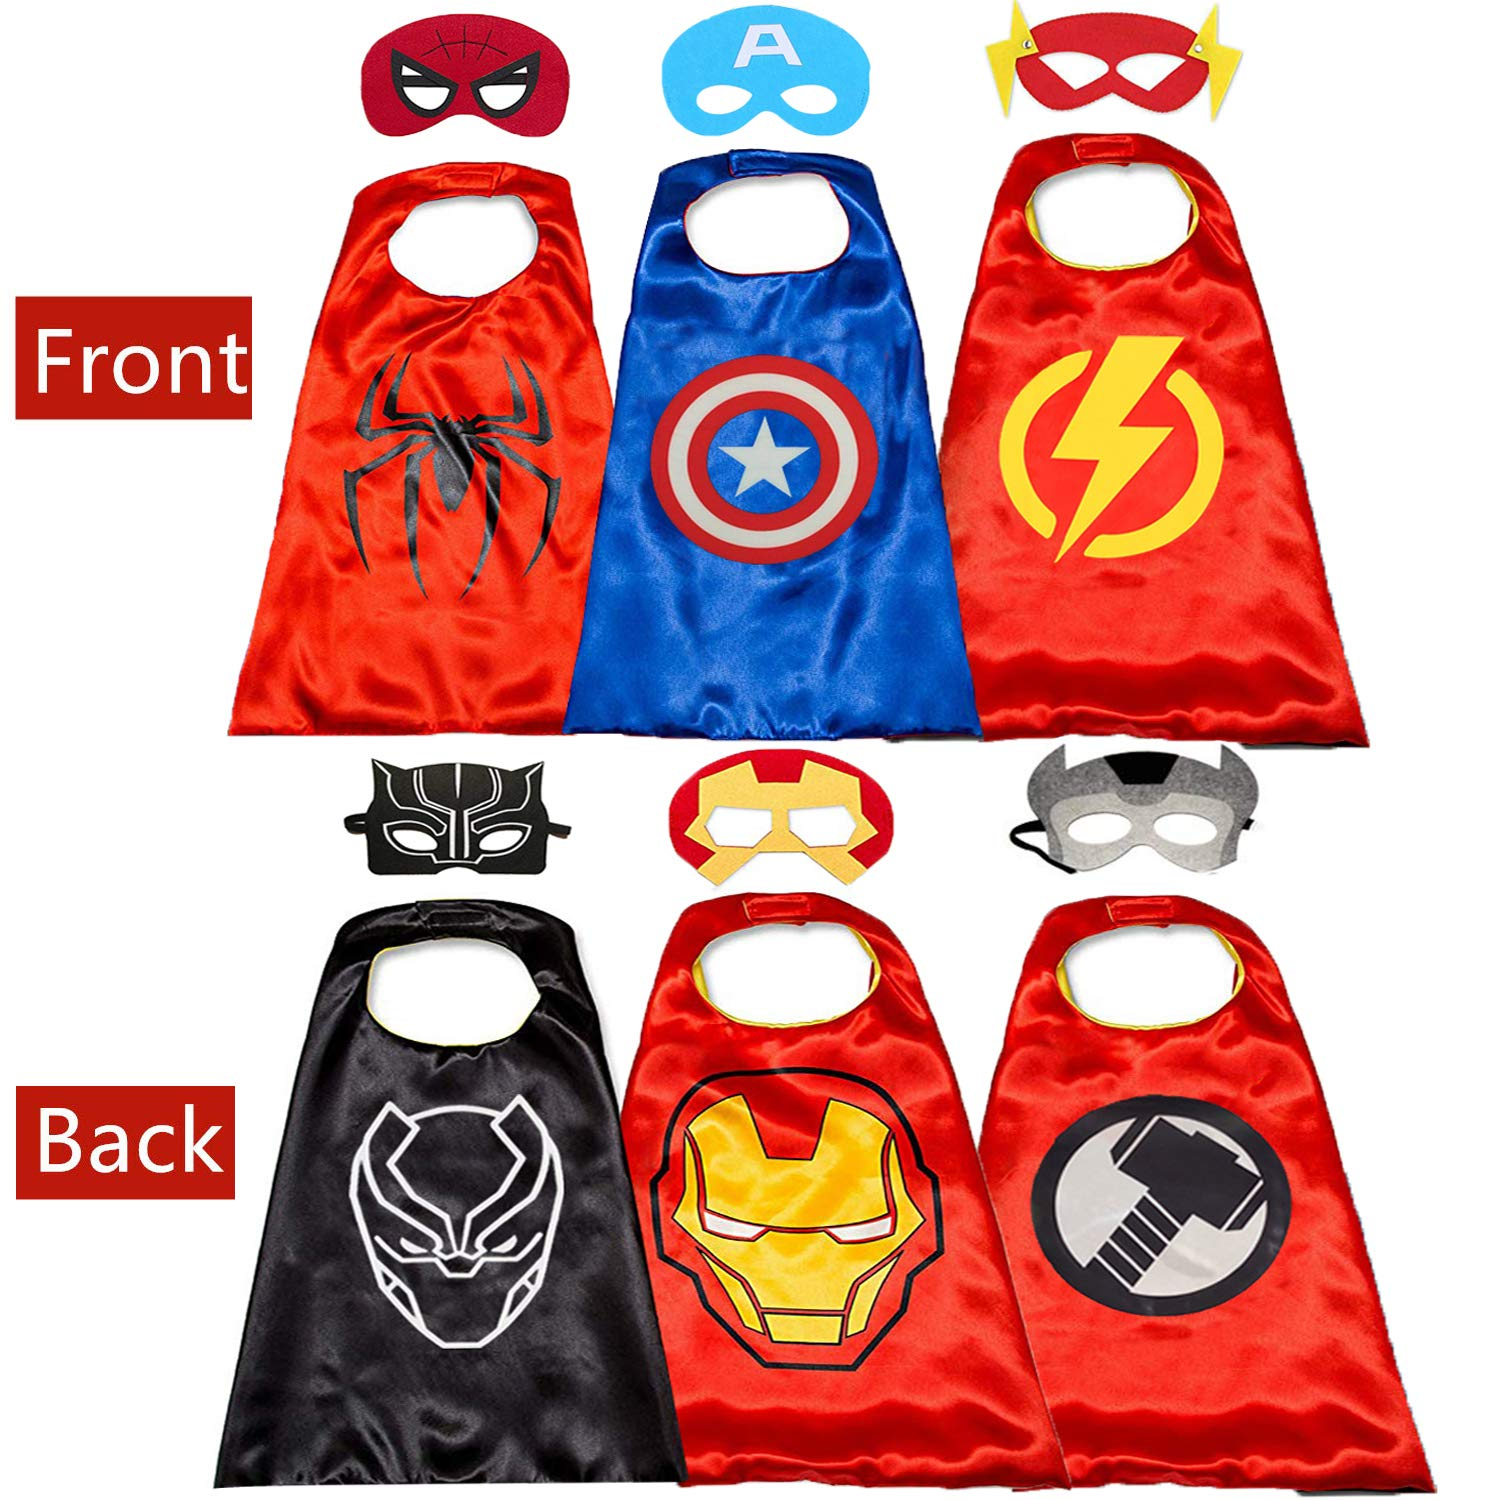 Kids Halloween Super Hero Spiderman Costume Fancy Dress Cosplay Party Xmas Gift